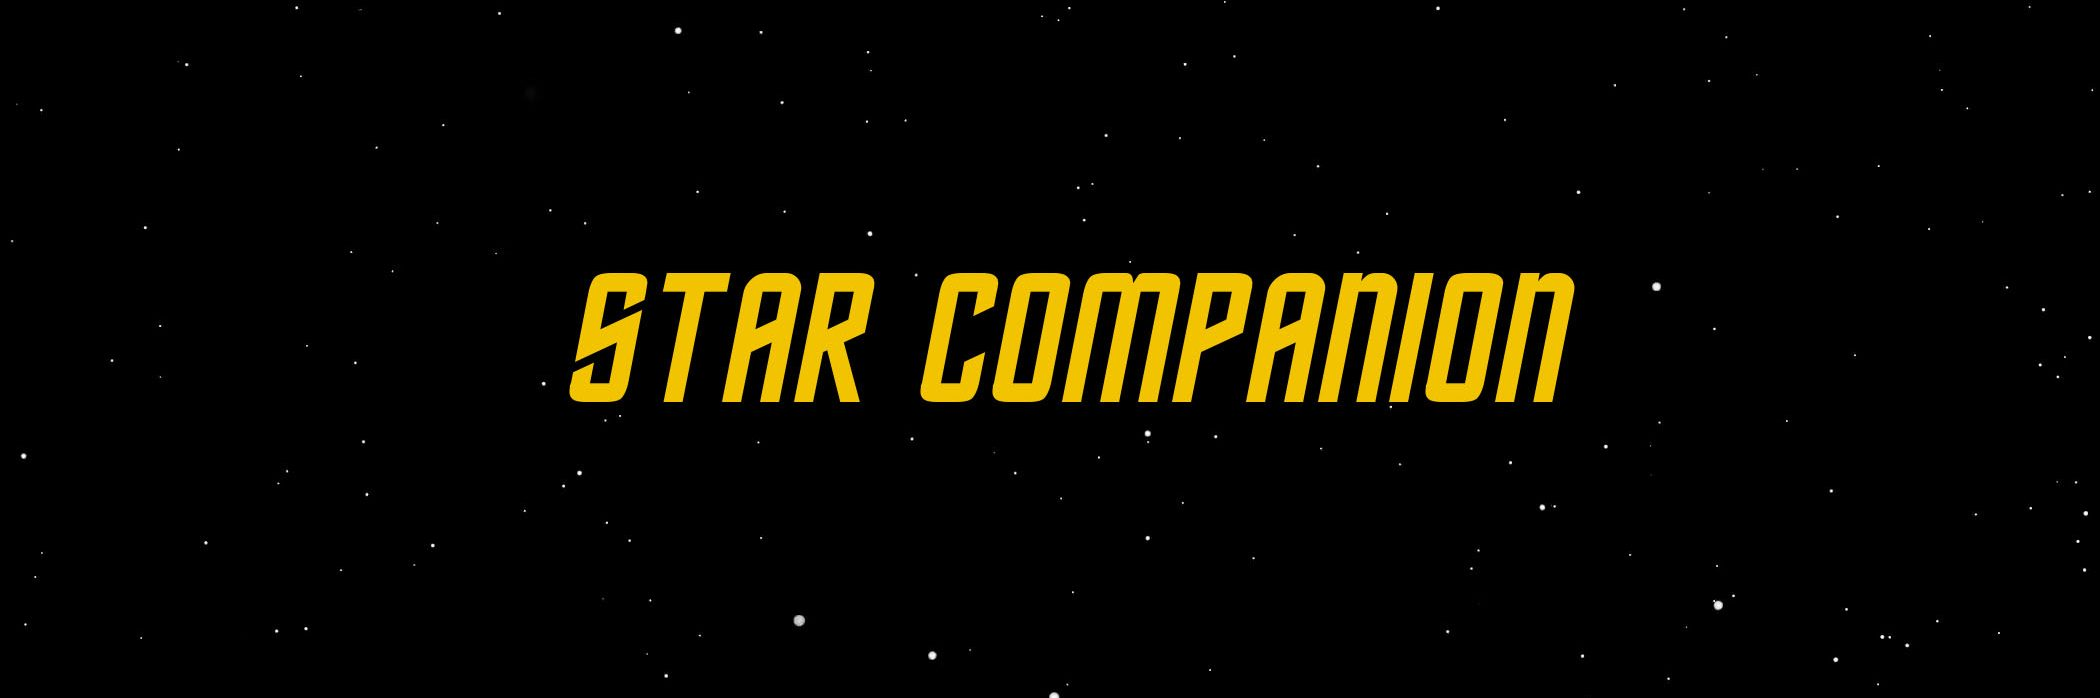 The Star Companion